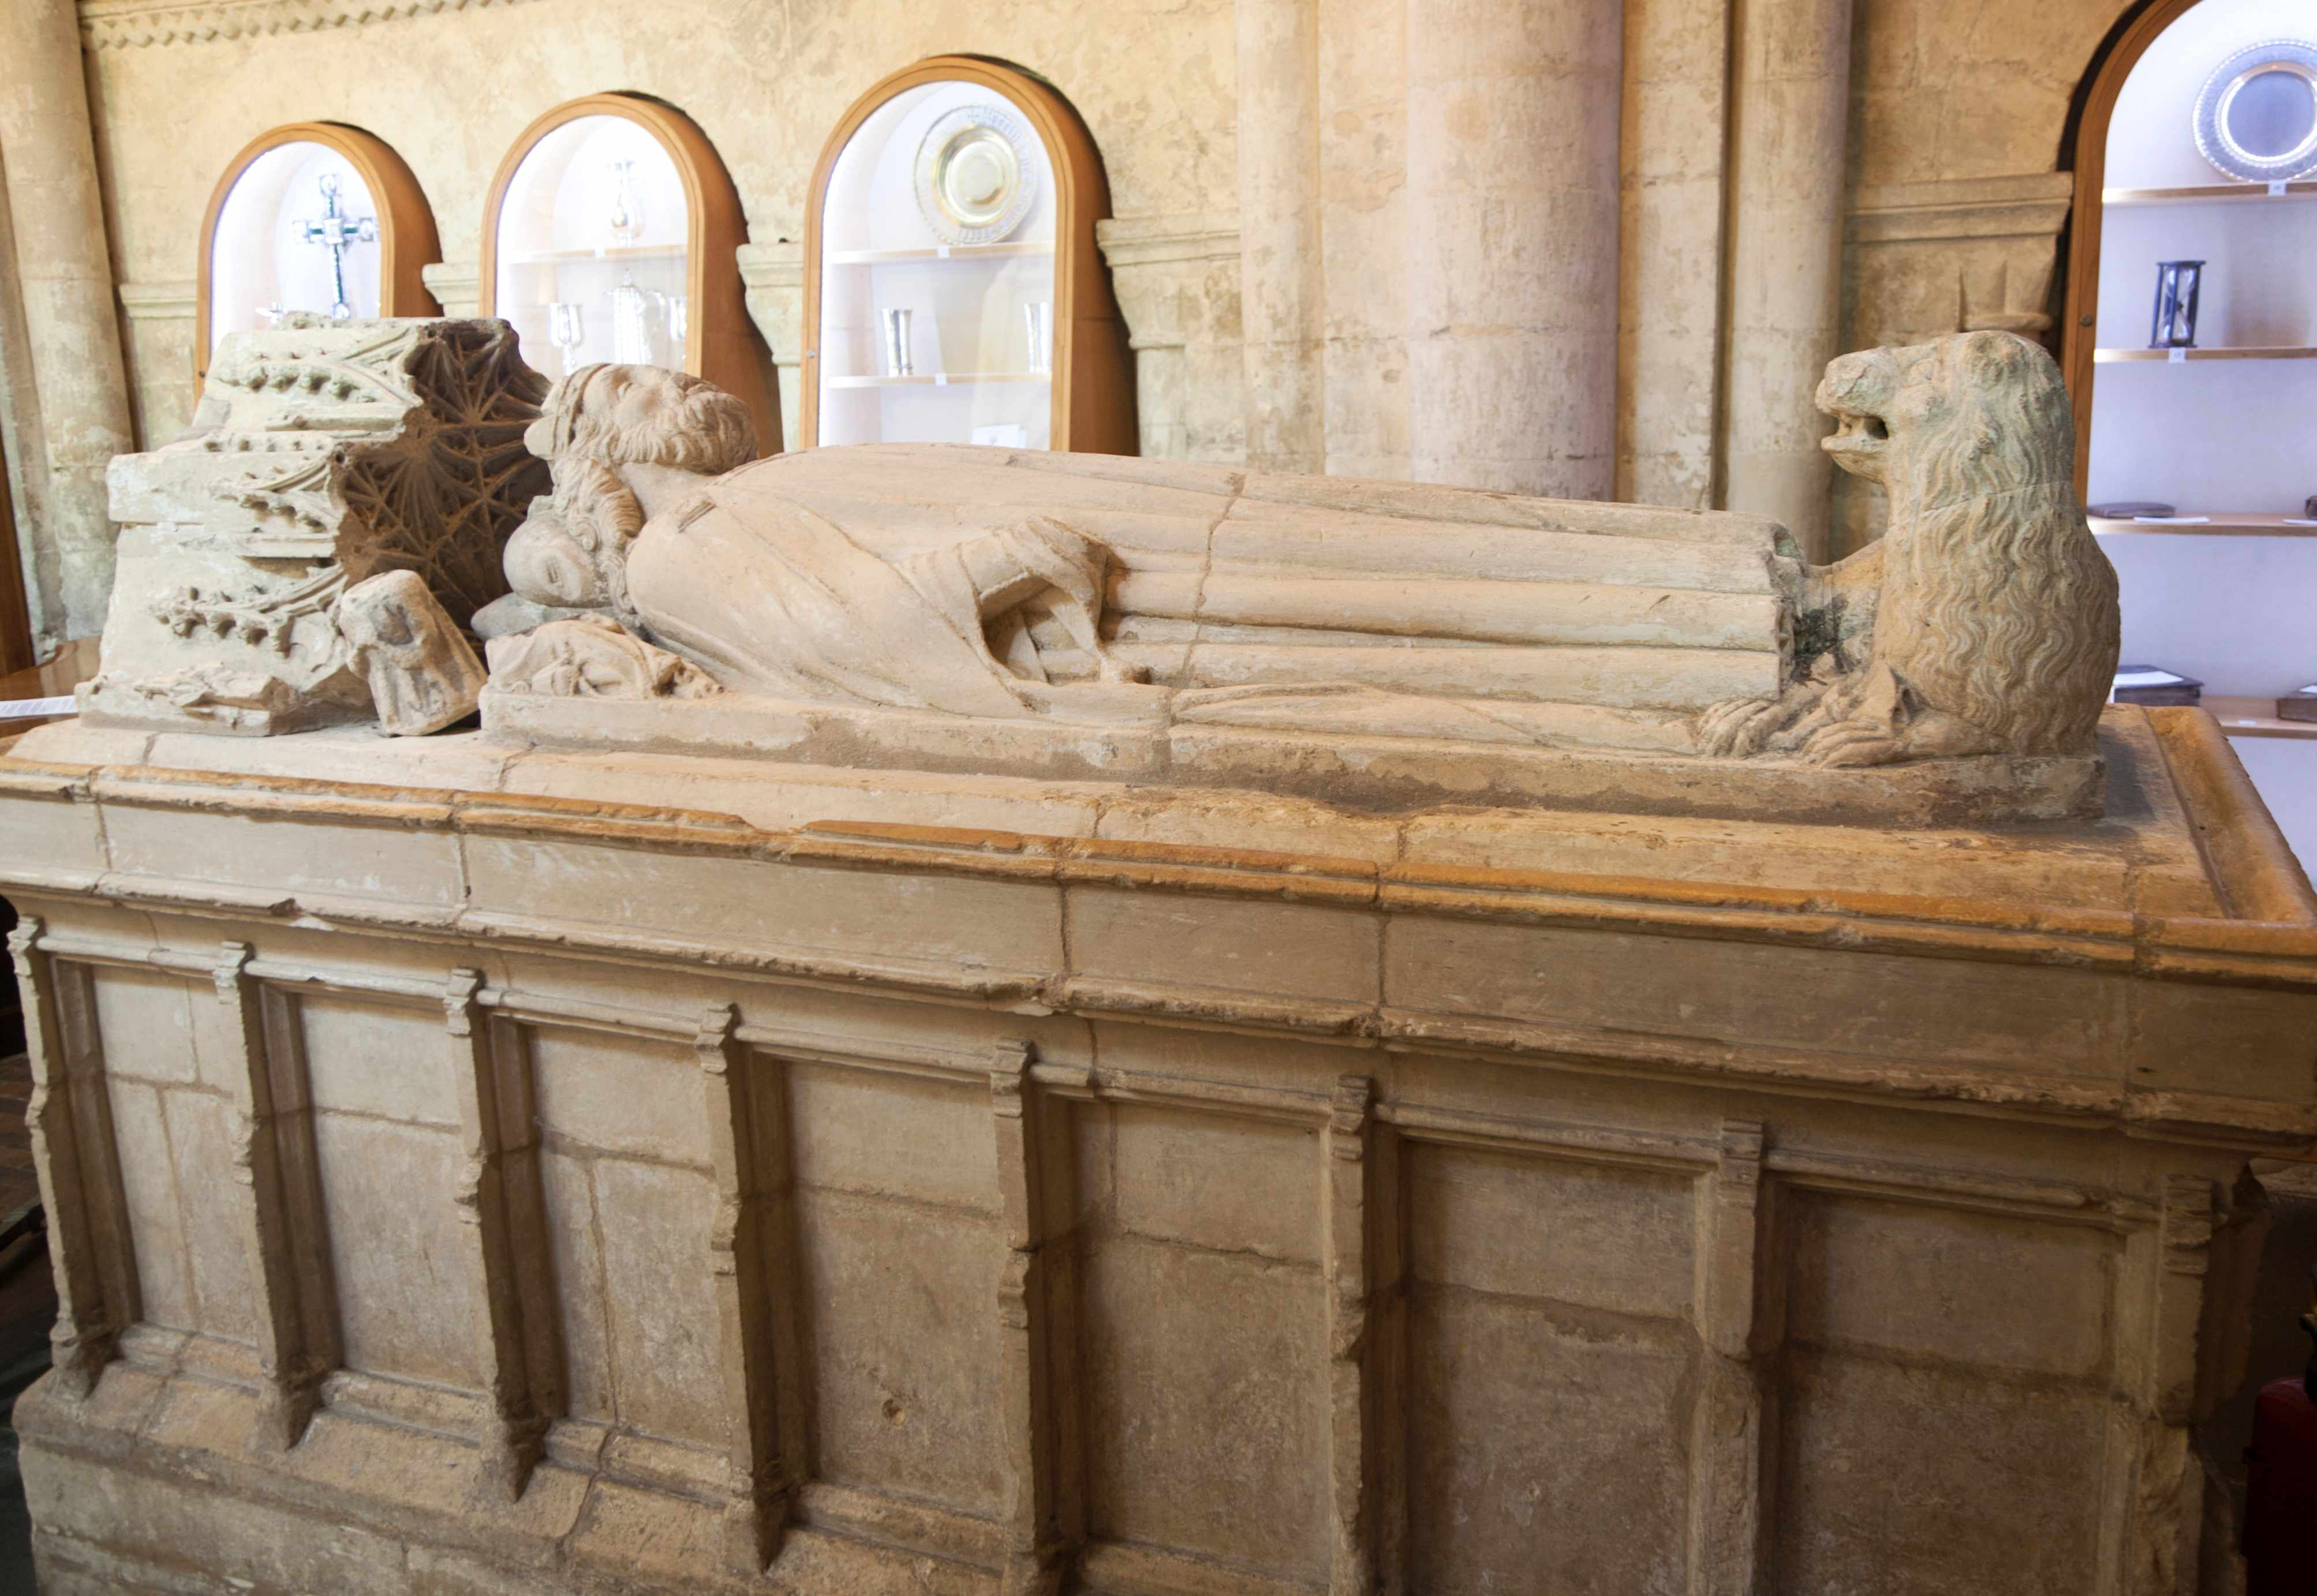 A memorial tomb to King Æthelstan, in Malmesbury Abbey, Wiltshire. (Photo by Geography Photos/UIG via Getty Images)